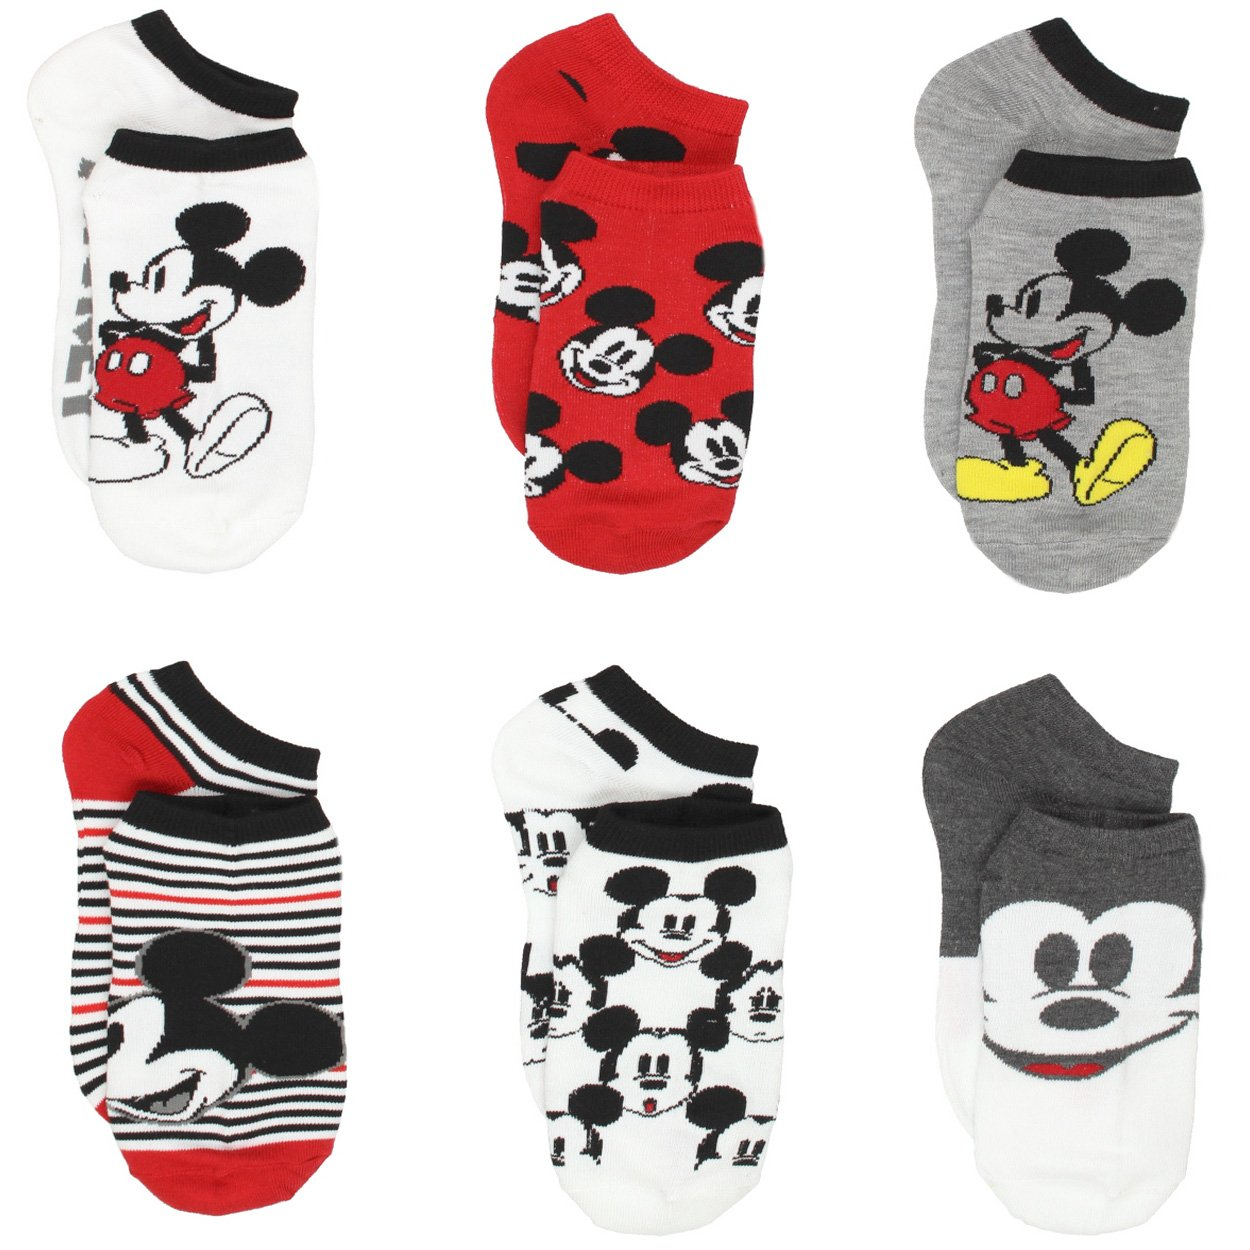 Mickey and Minnie Mouse 6 pack Socks (9-11 Womens (Shoe: 4-10), Mickey Black/White)